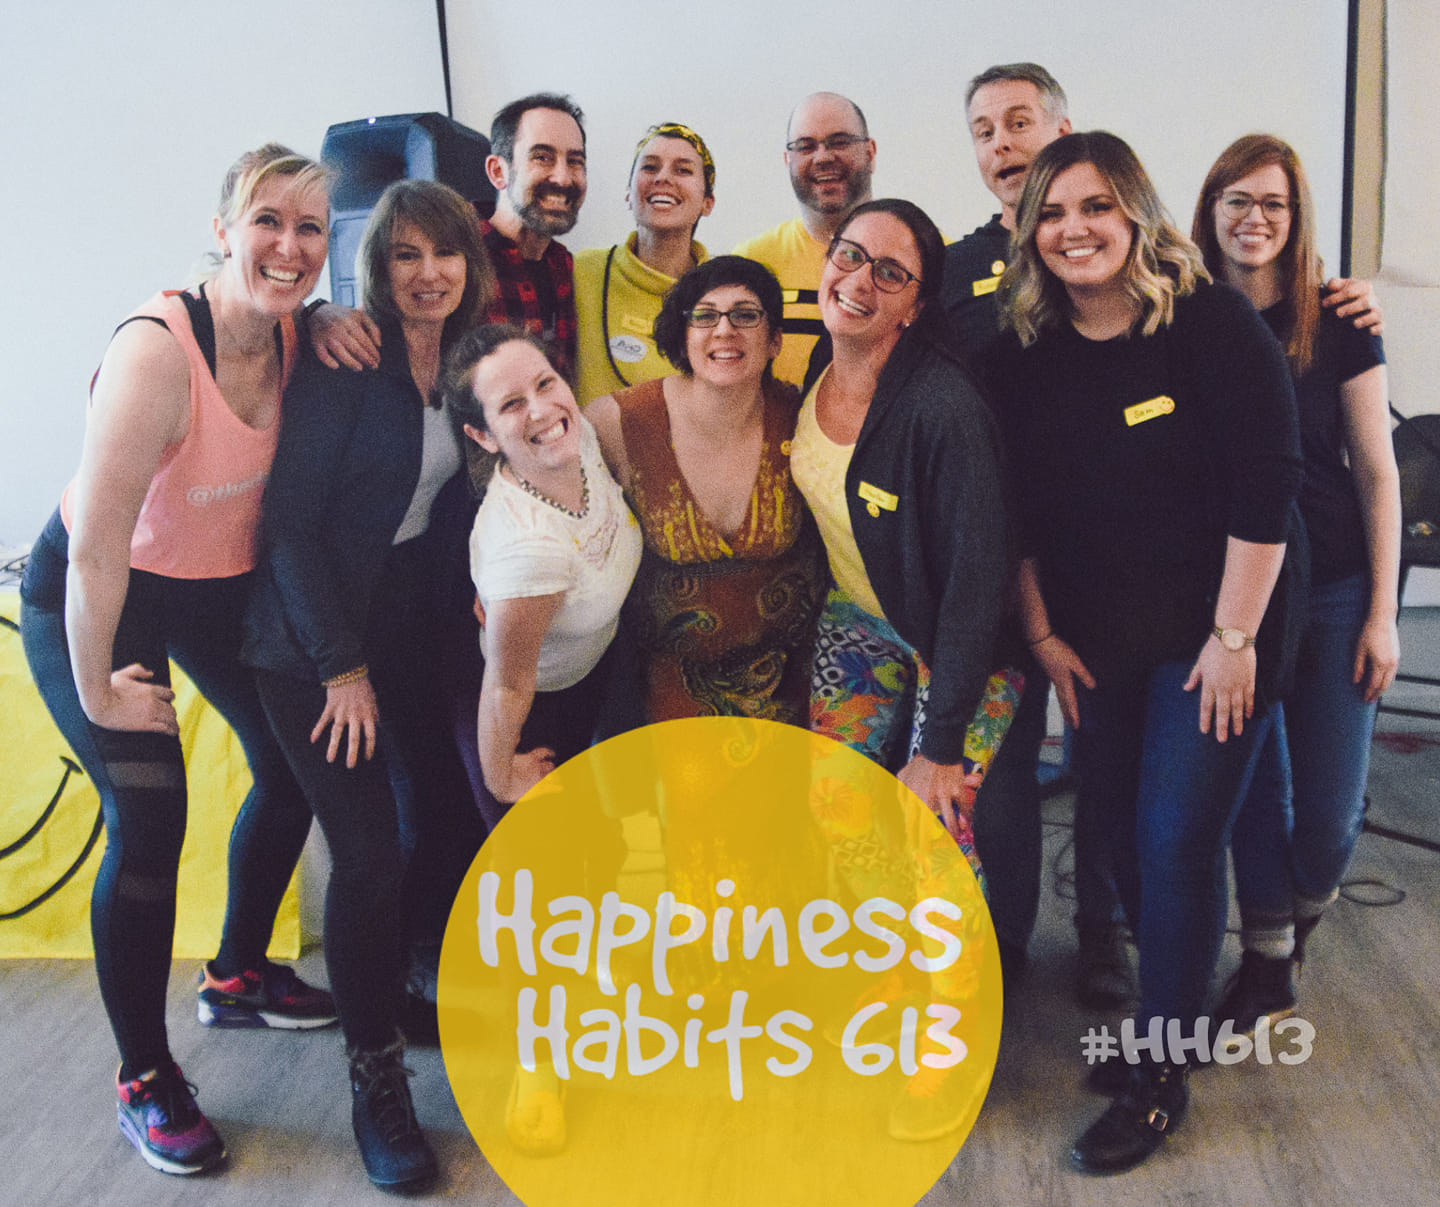 """Happiness Habits 613"", community-building events series for fostering health and happiness in Febru"